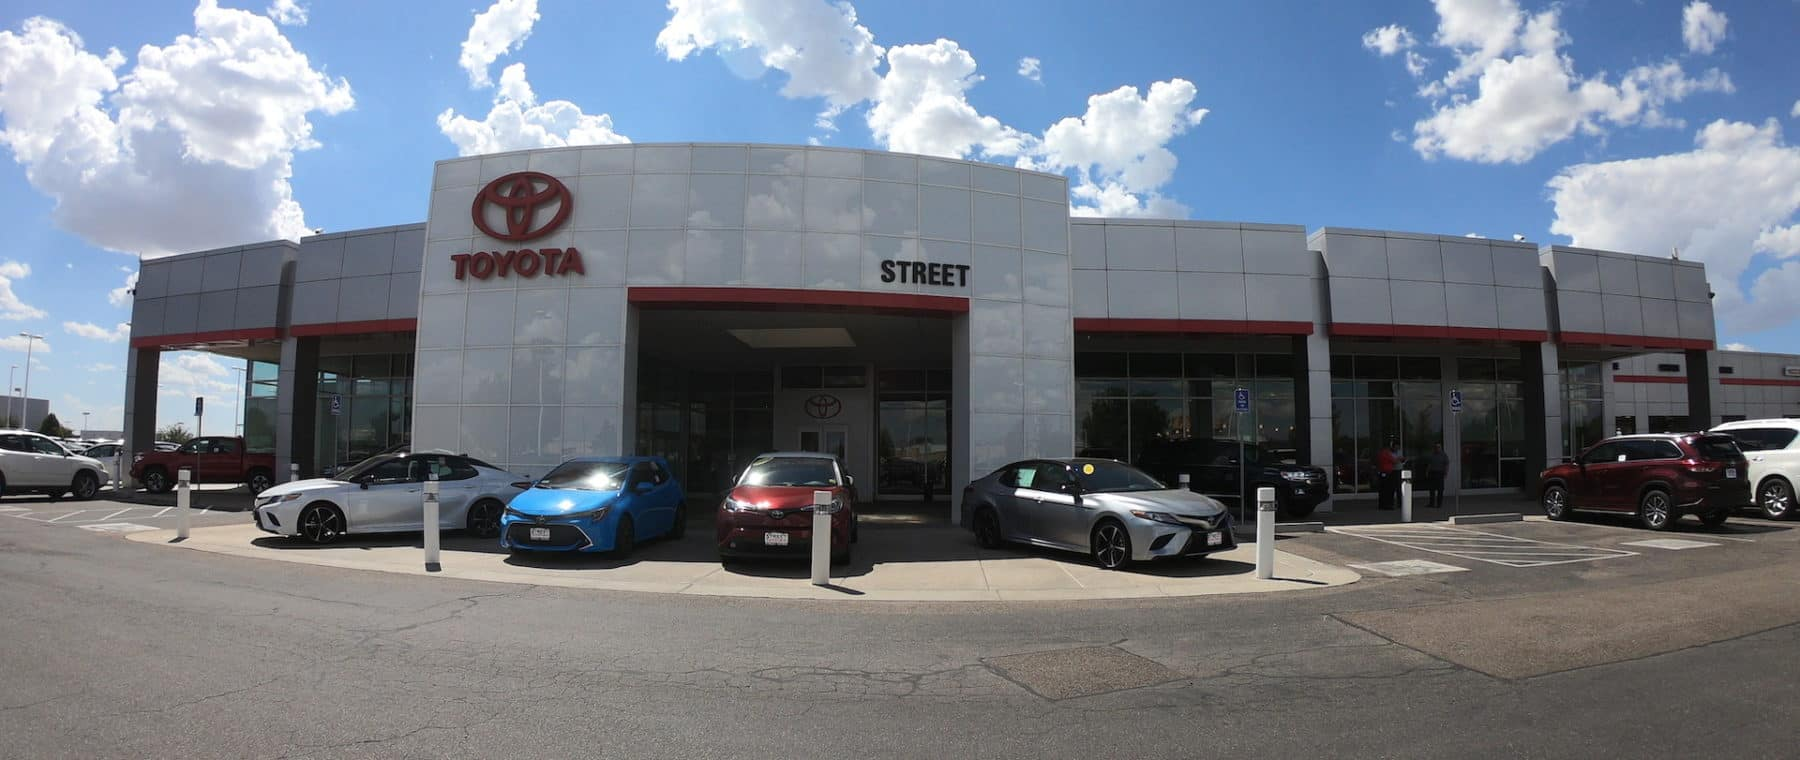 Car Dealerships In Lubbock Tx >> Toyota Dealership Amarillo Tx Serving Lubbock Plainview